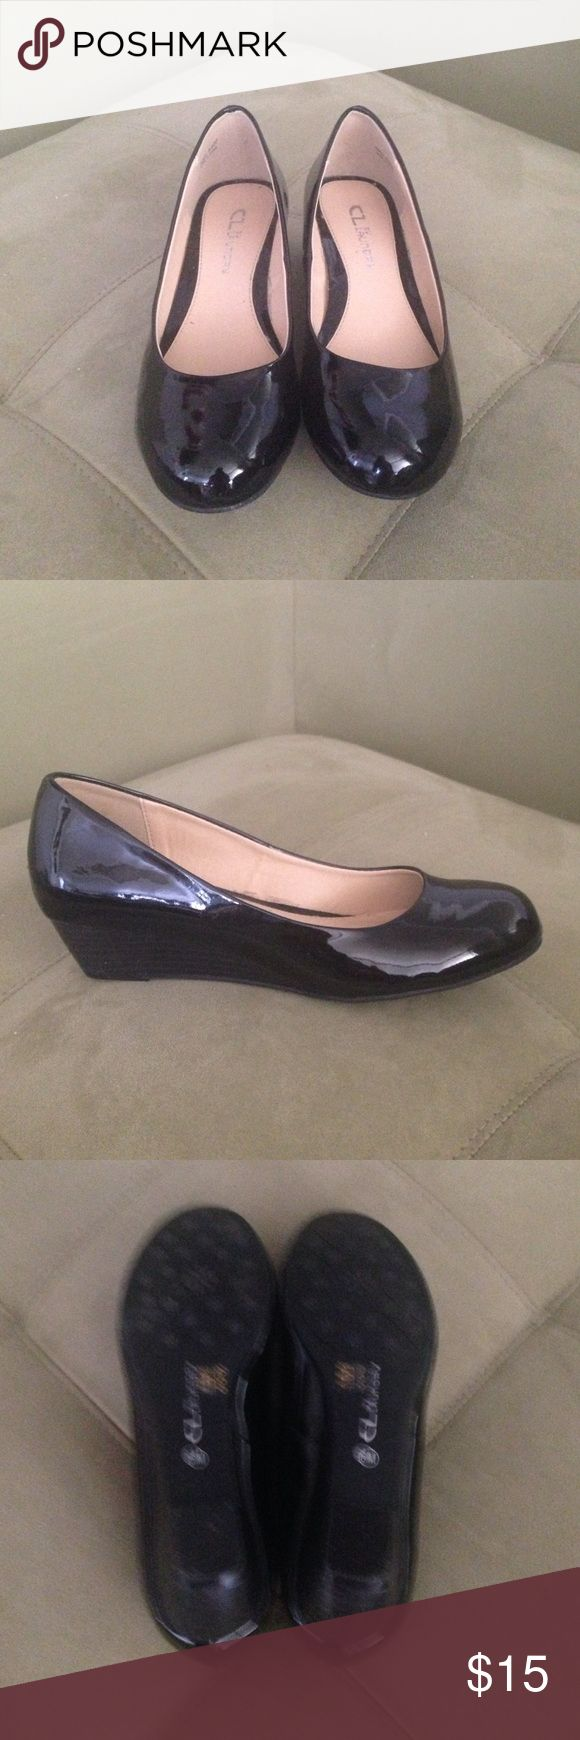 CL by Laundry Black Wedge Pump Black, Wedge Pump, One day used, like new! CL by Laundry  Shoes Wedges